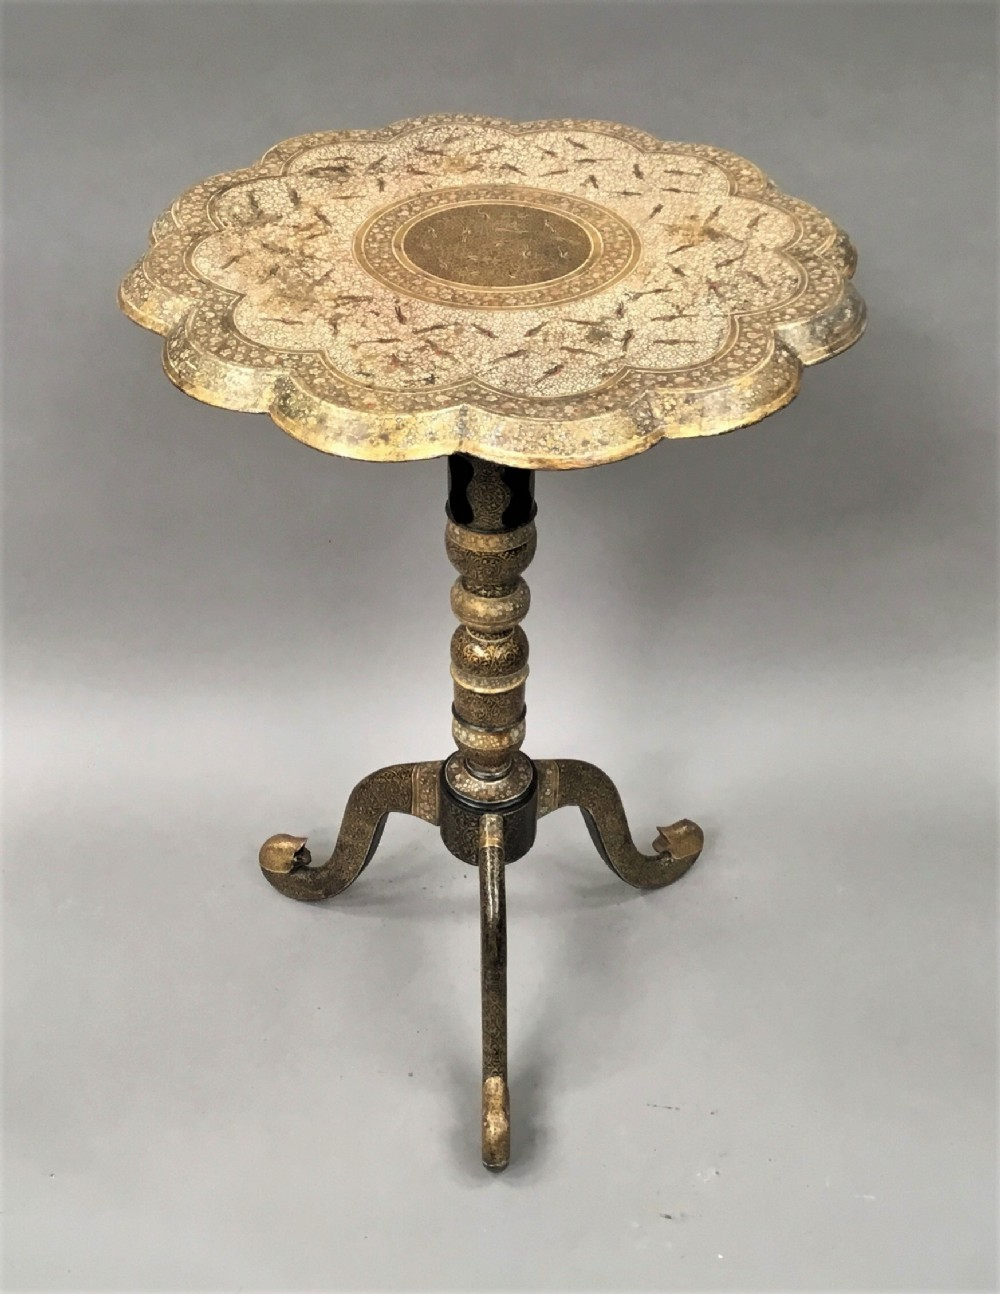 late c19th kashmir table with fine detailed paintwork